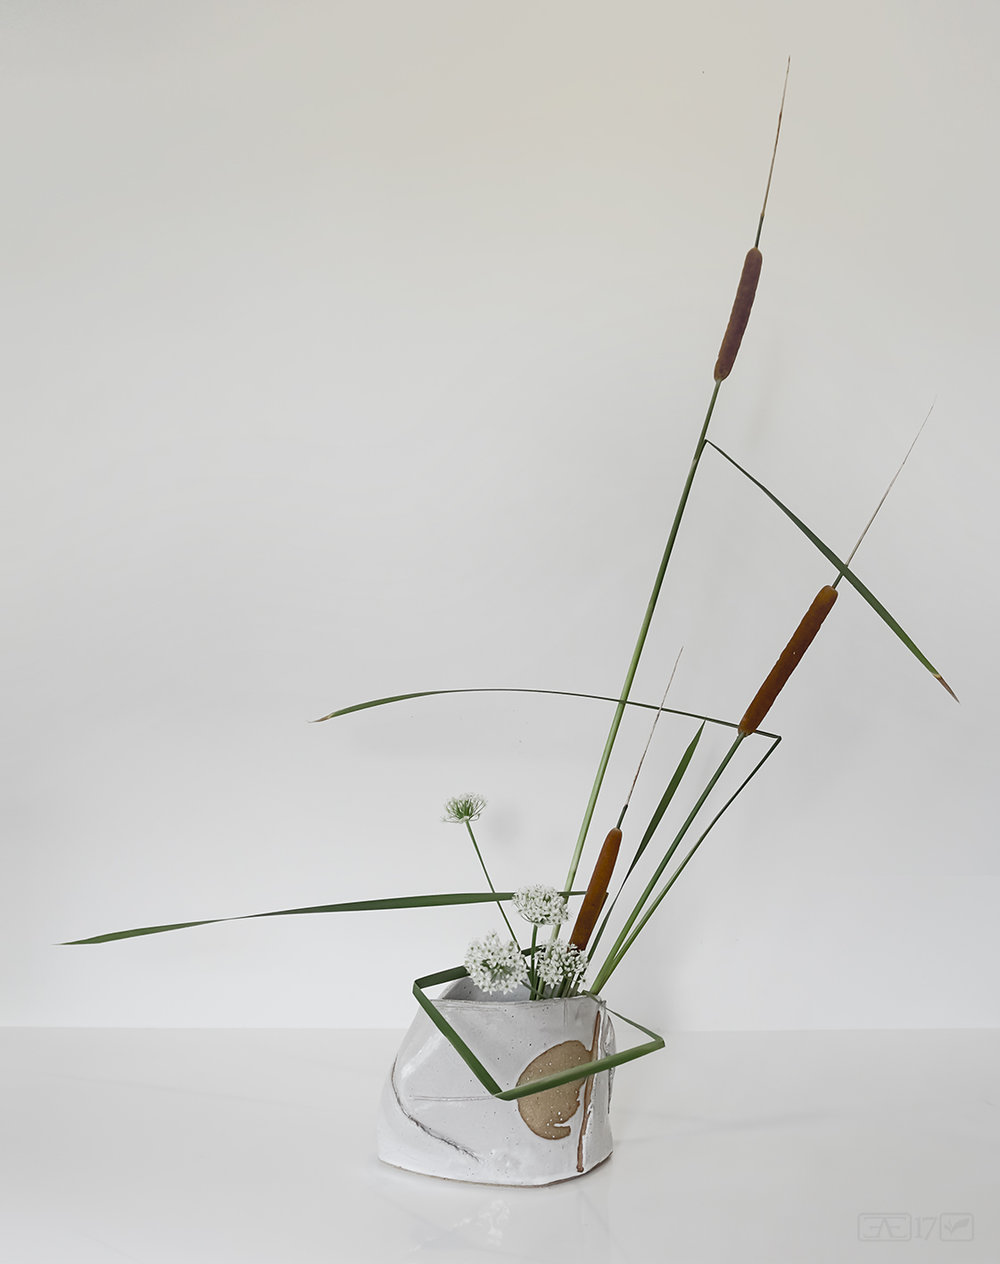 Ikebana arrangement making great use of negative space.